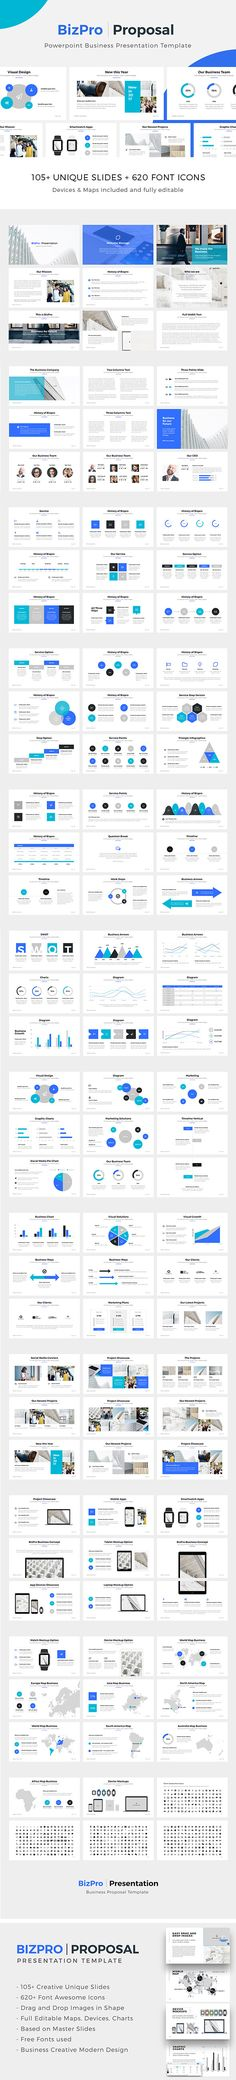 Commercial Proposal Format Delectable Commercial Proposal Template #09  Commercial Proposal  Pinterest .